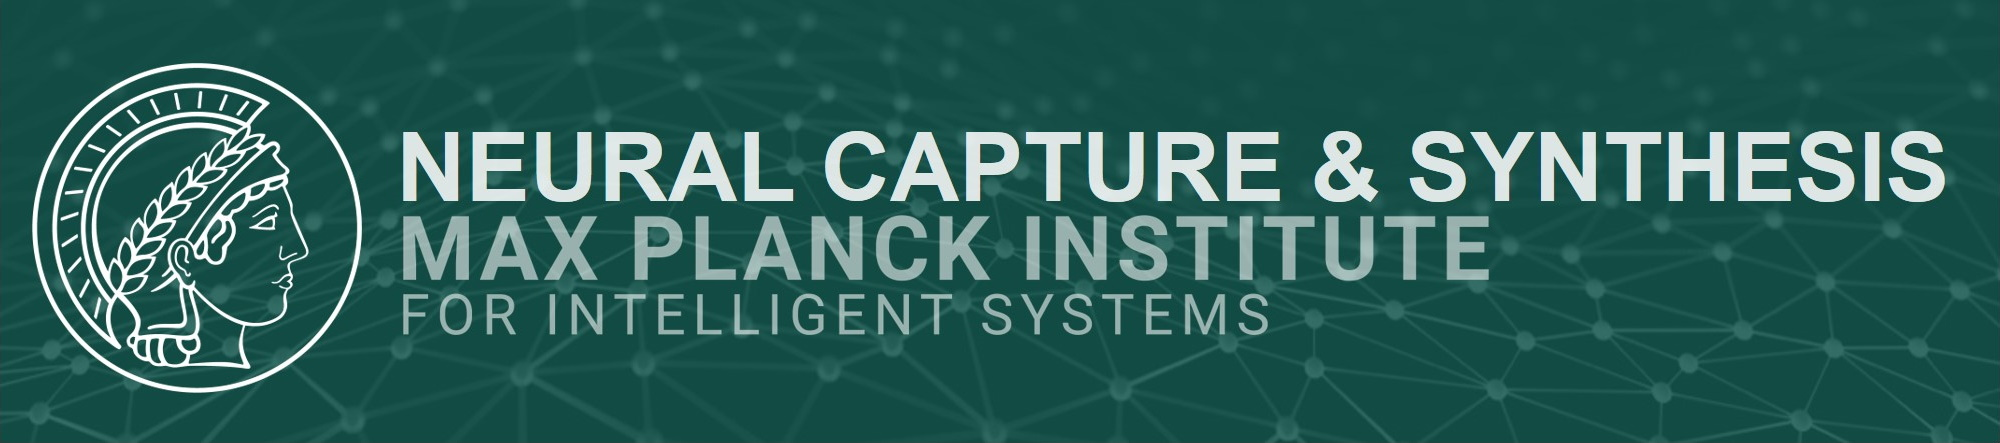 Neural Capture and Synthesis at the Max Planck Institute for Intelligent Systems